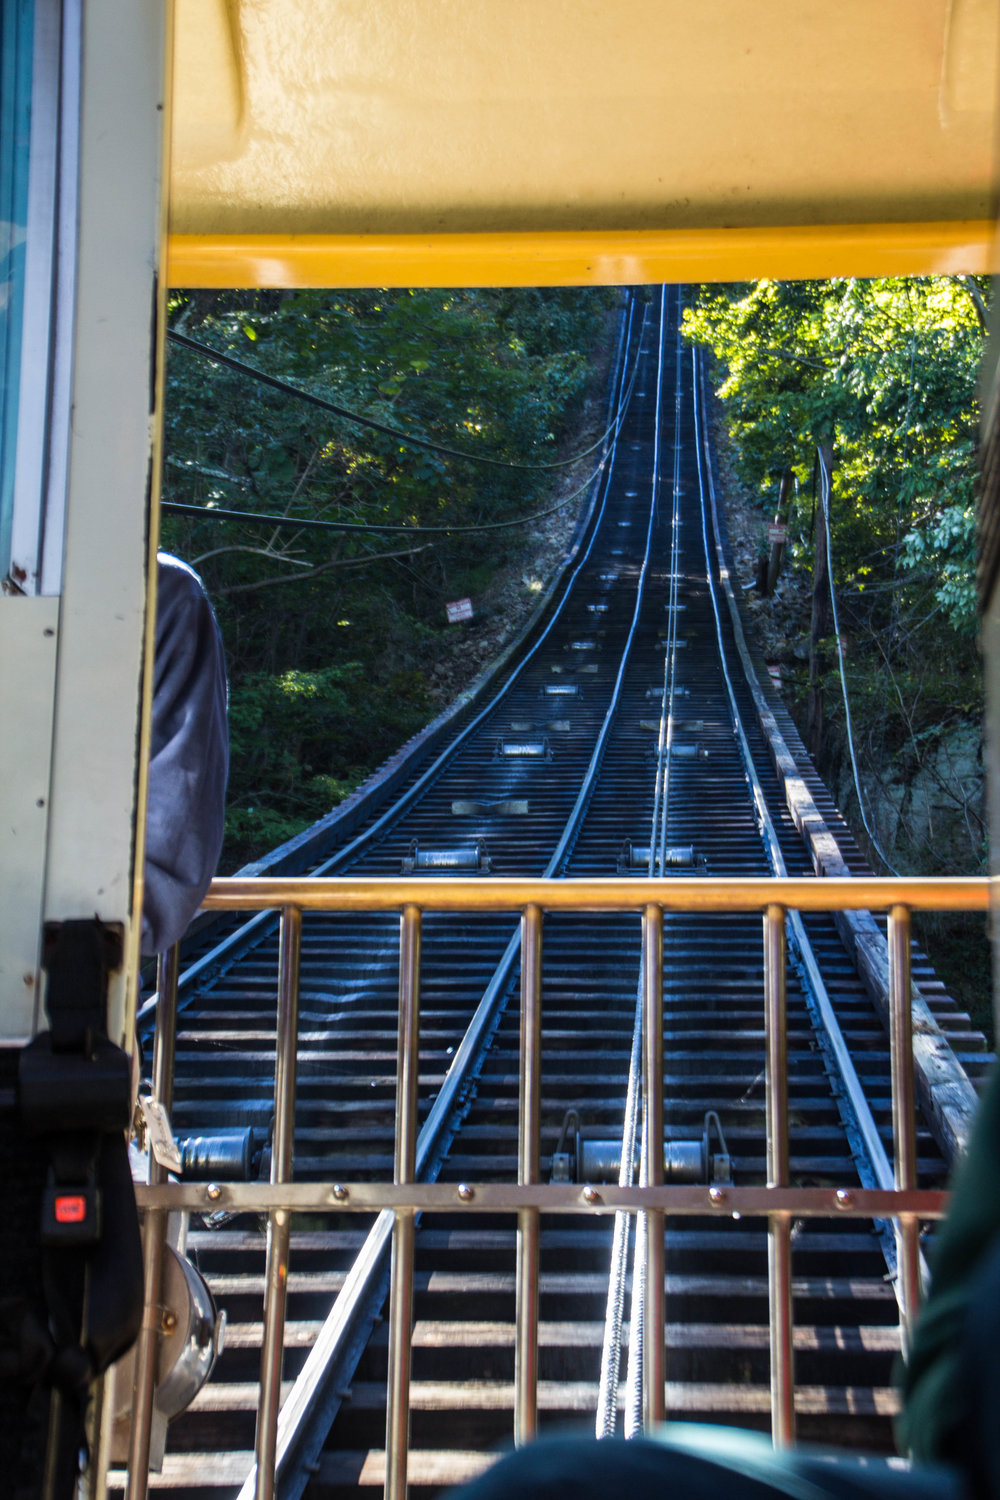 chattanooga-incline-railway-19.jpg